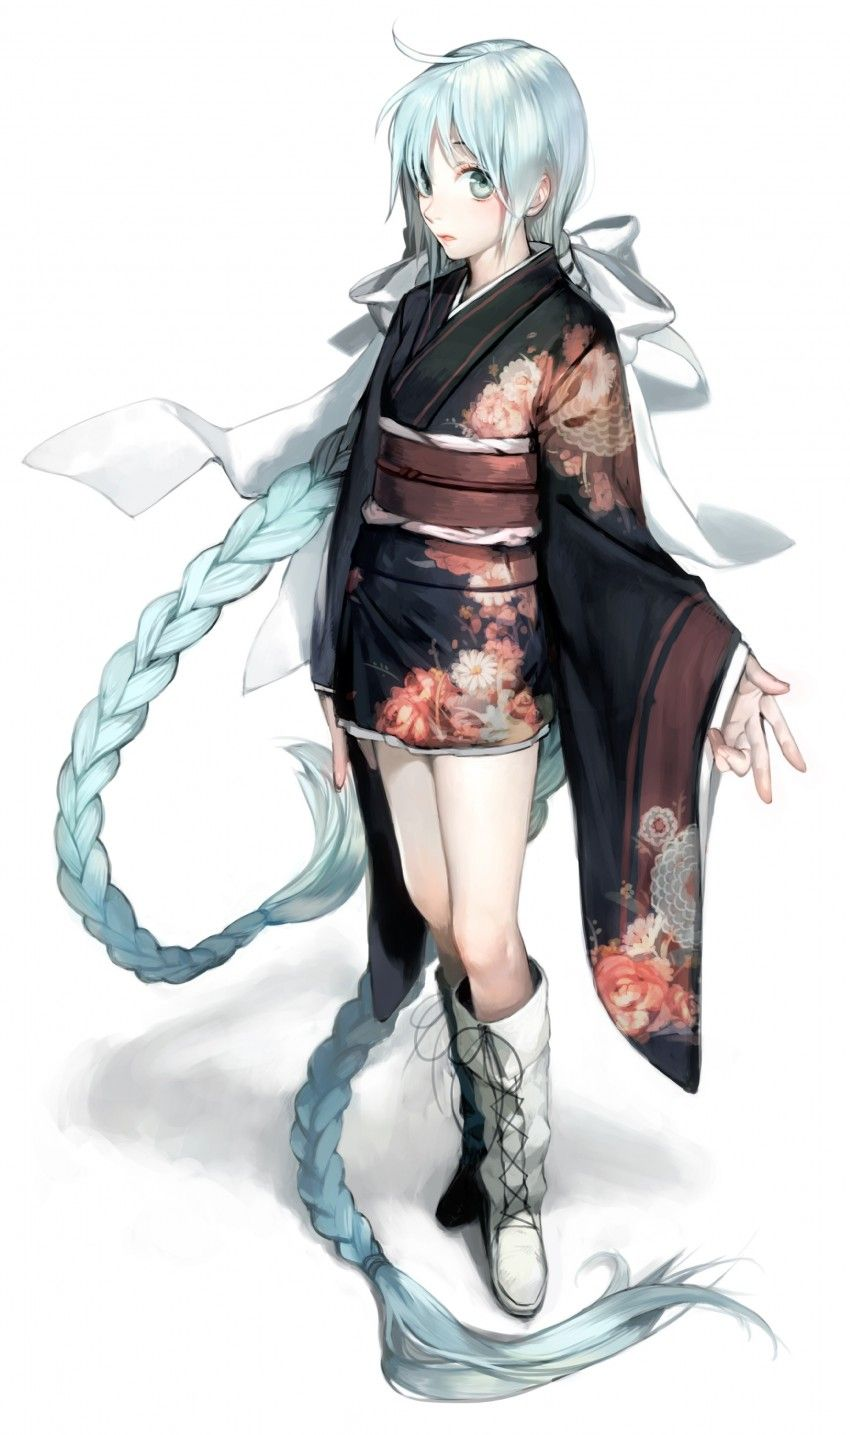 Anime Characters Kimono : Anime girl with a really long braid potential images